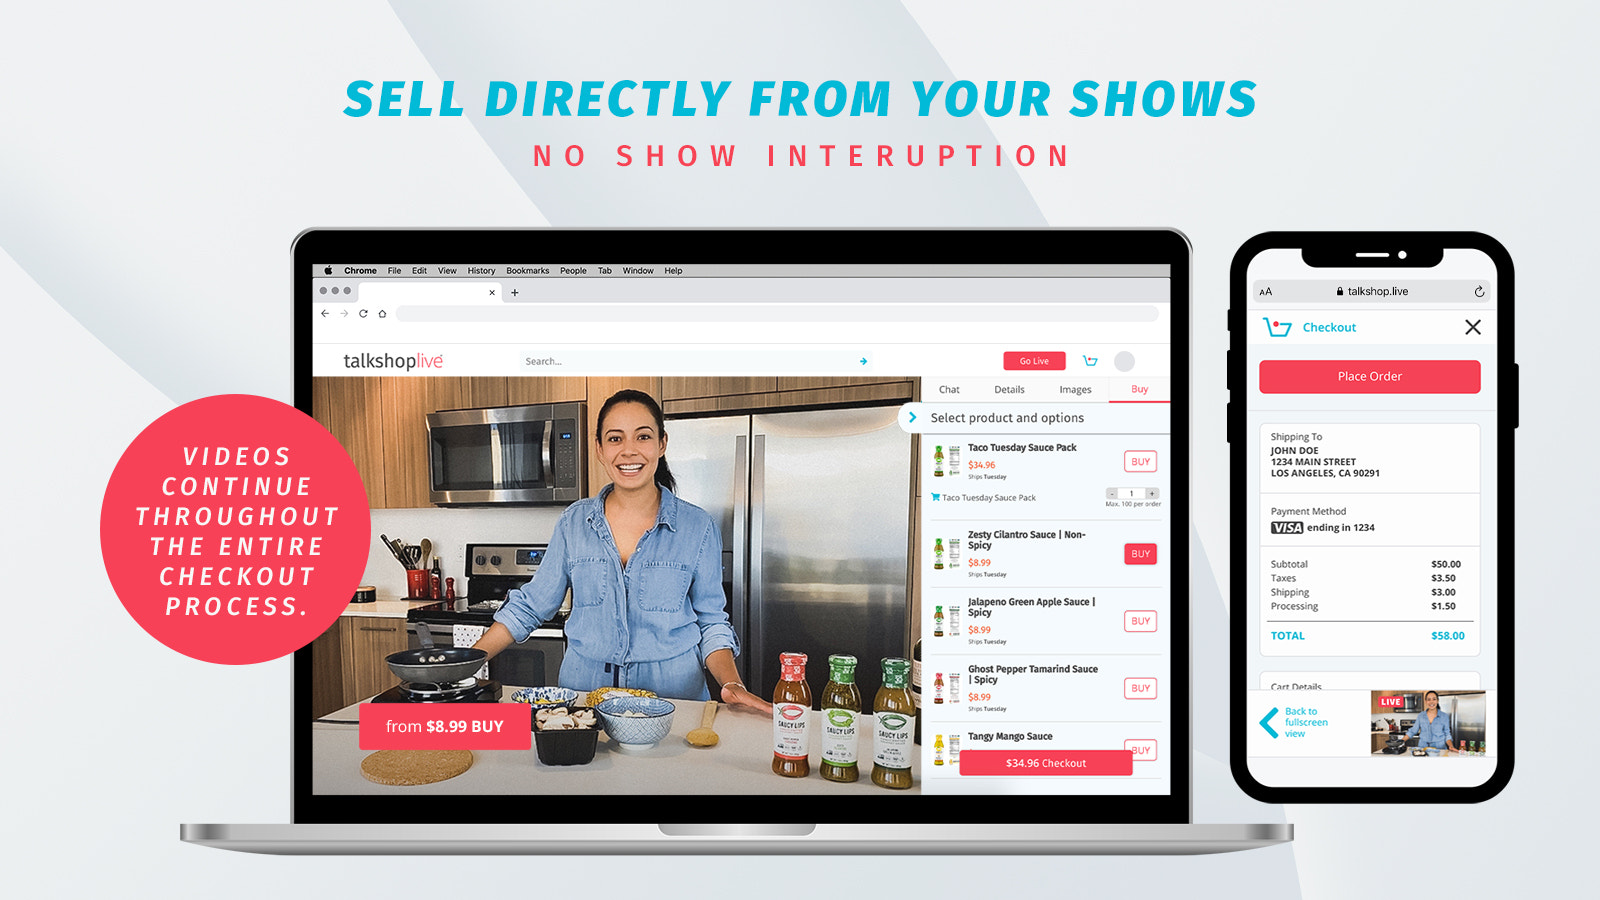 Sell directly from your shows